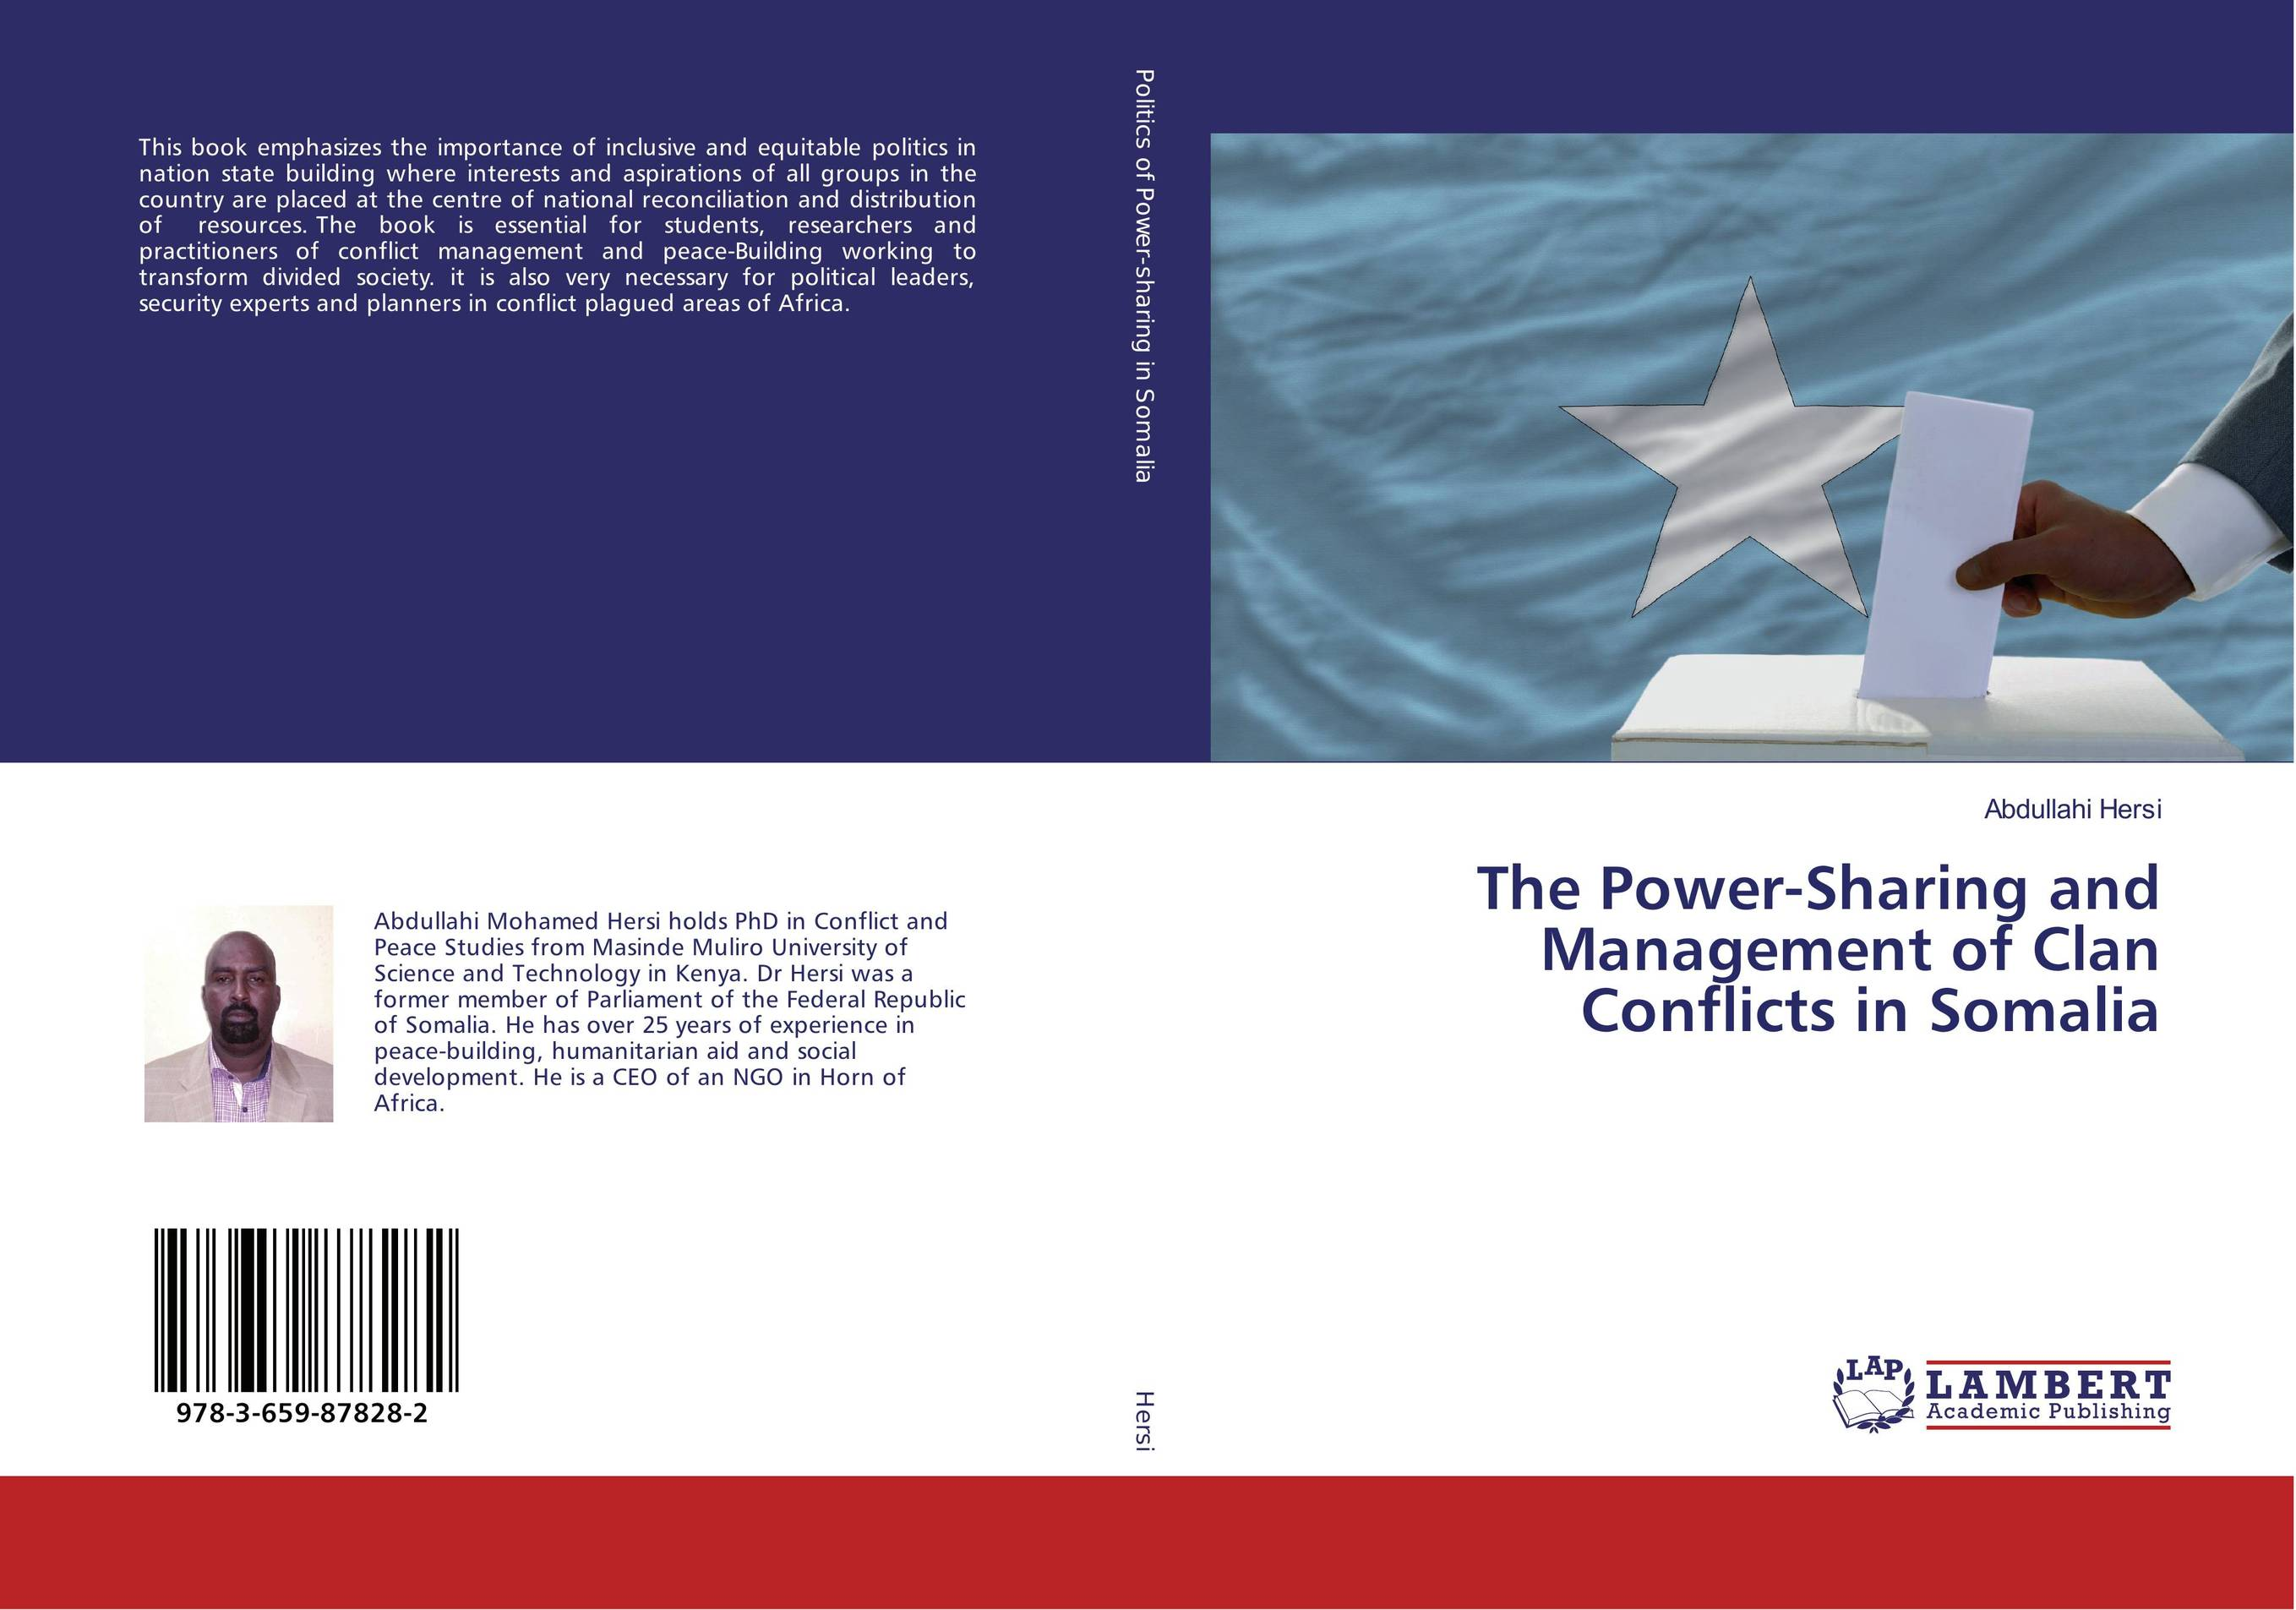 The Power-Sharing and Management of Clan Conflicts in Somalia asad ullah alam and siffat ullah khan knowledge sharing management in software outsourcing projects